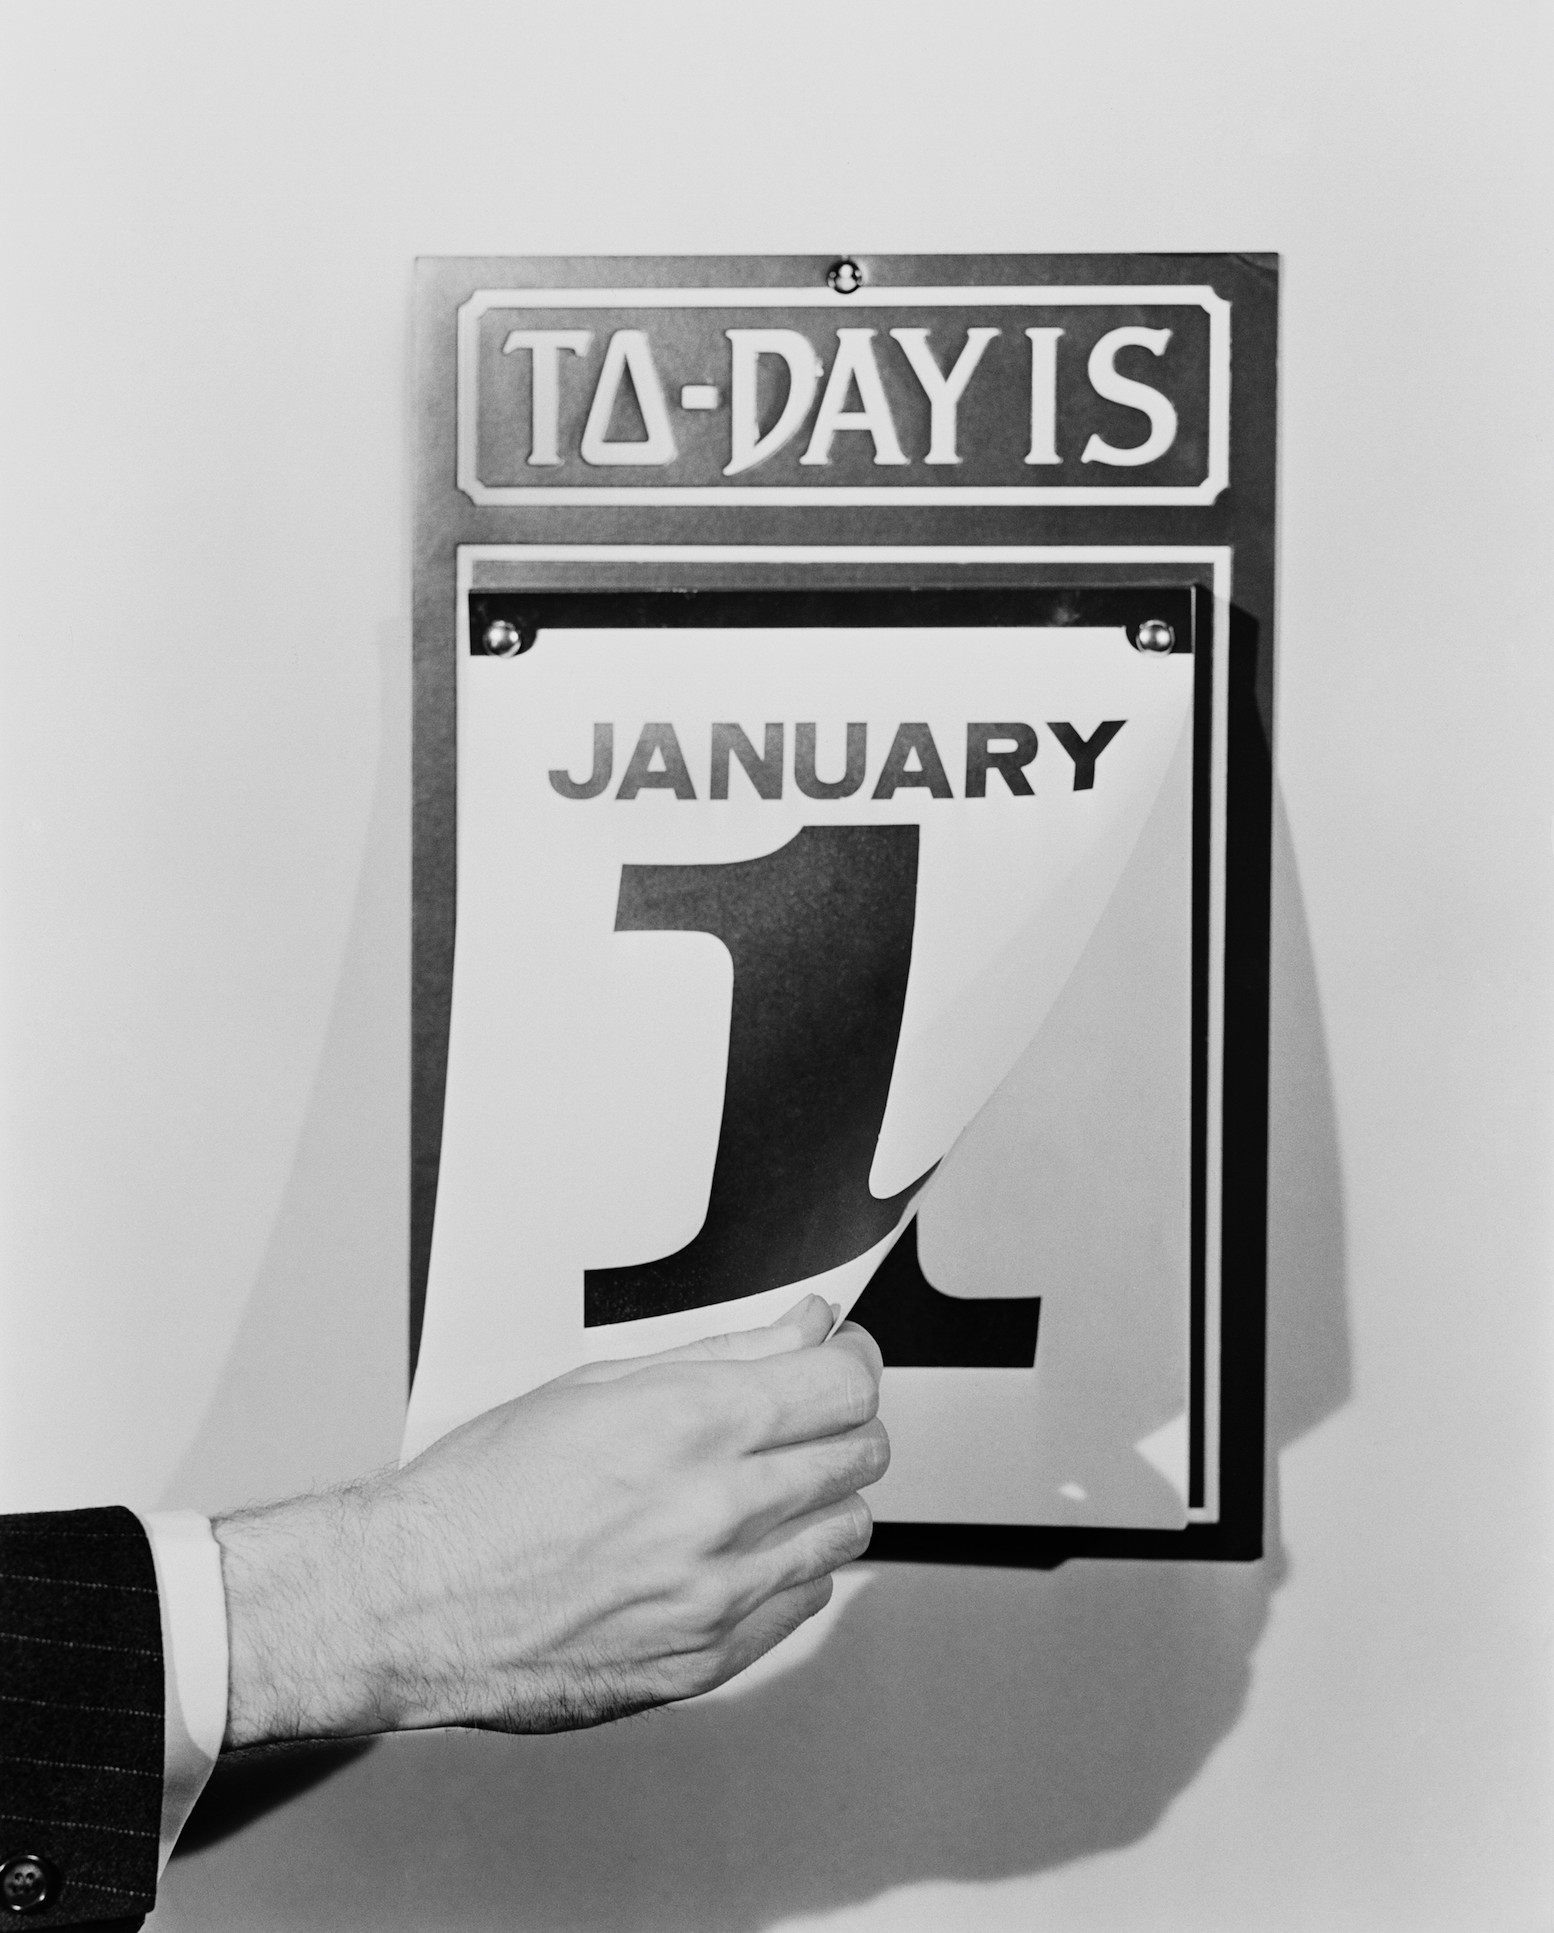 A man's hand tearing January 1 page off of daily wall calendar, circa 1930s